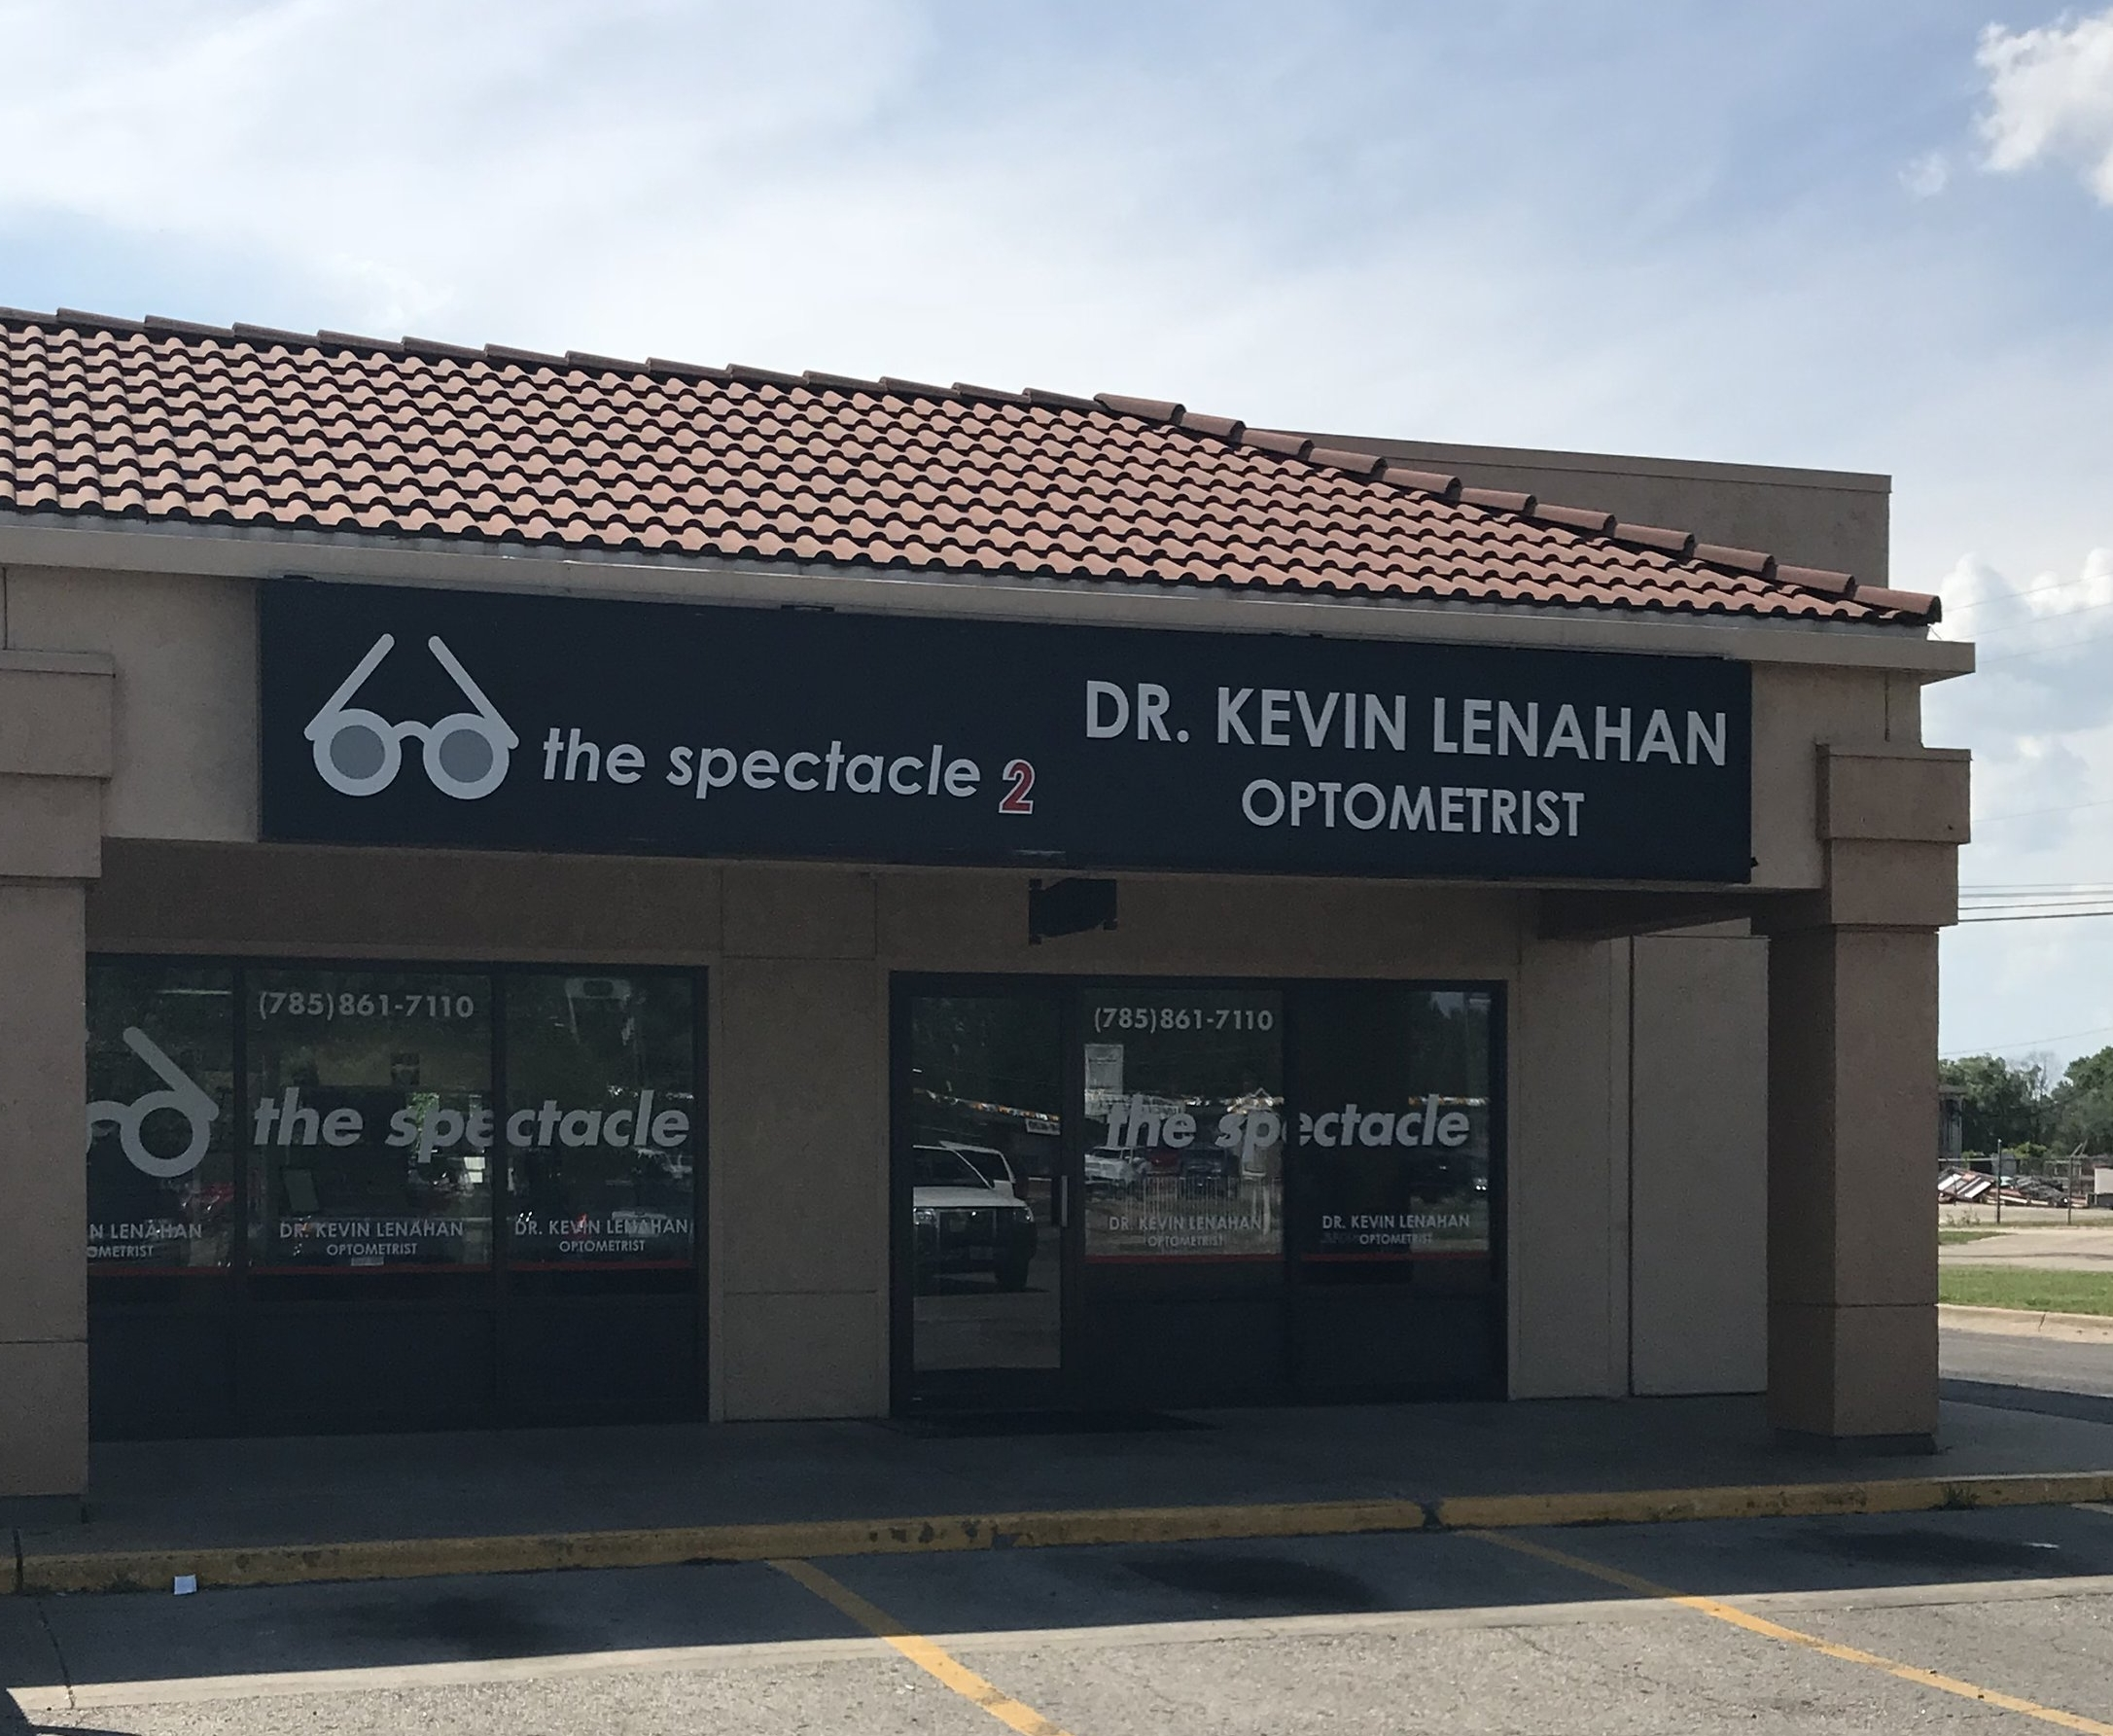 North Topeka - This office became The EyeDoctors Optometrists as of 8/20/19. Click here for details.1835 NW Topeka Blvd., Topeka, Kansas, 66608Phone: 785-861-7110Business Hours:Monday, 9 a.m.- 6 p.m. Tuesday, 9 a.m.-5 p.m. Wednesday, ClosedThursday, 9 a.m.- 5 p.m. Friday 9 a.m.-5 p.m.Closed For Lunch From 1 p.m. to 2 p.m. everyday.